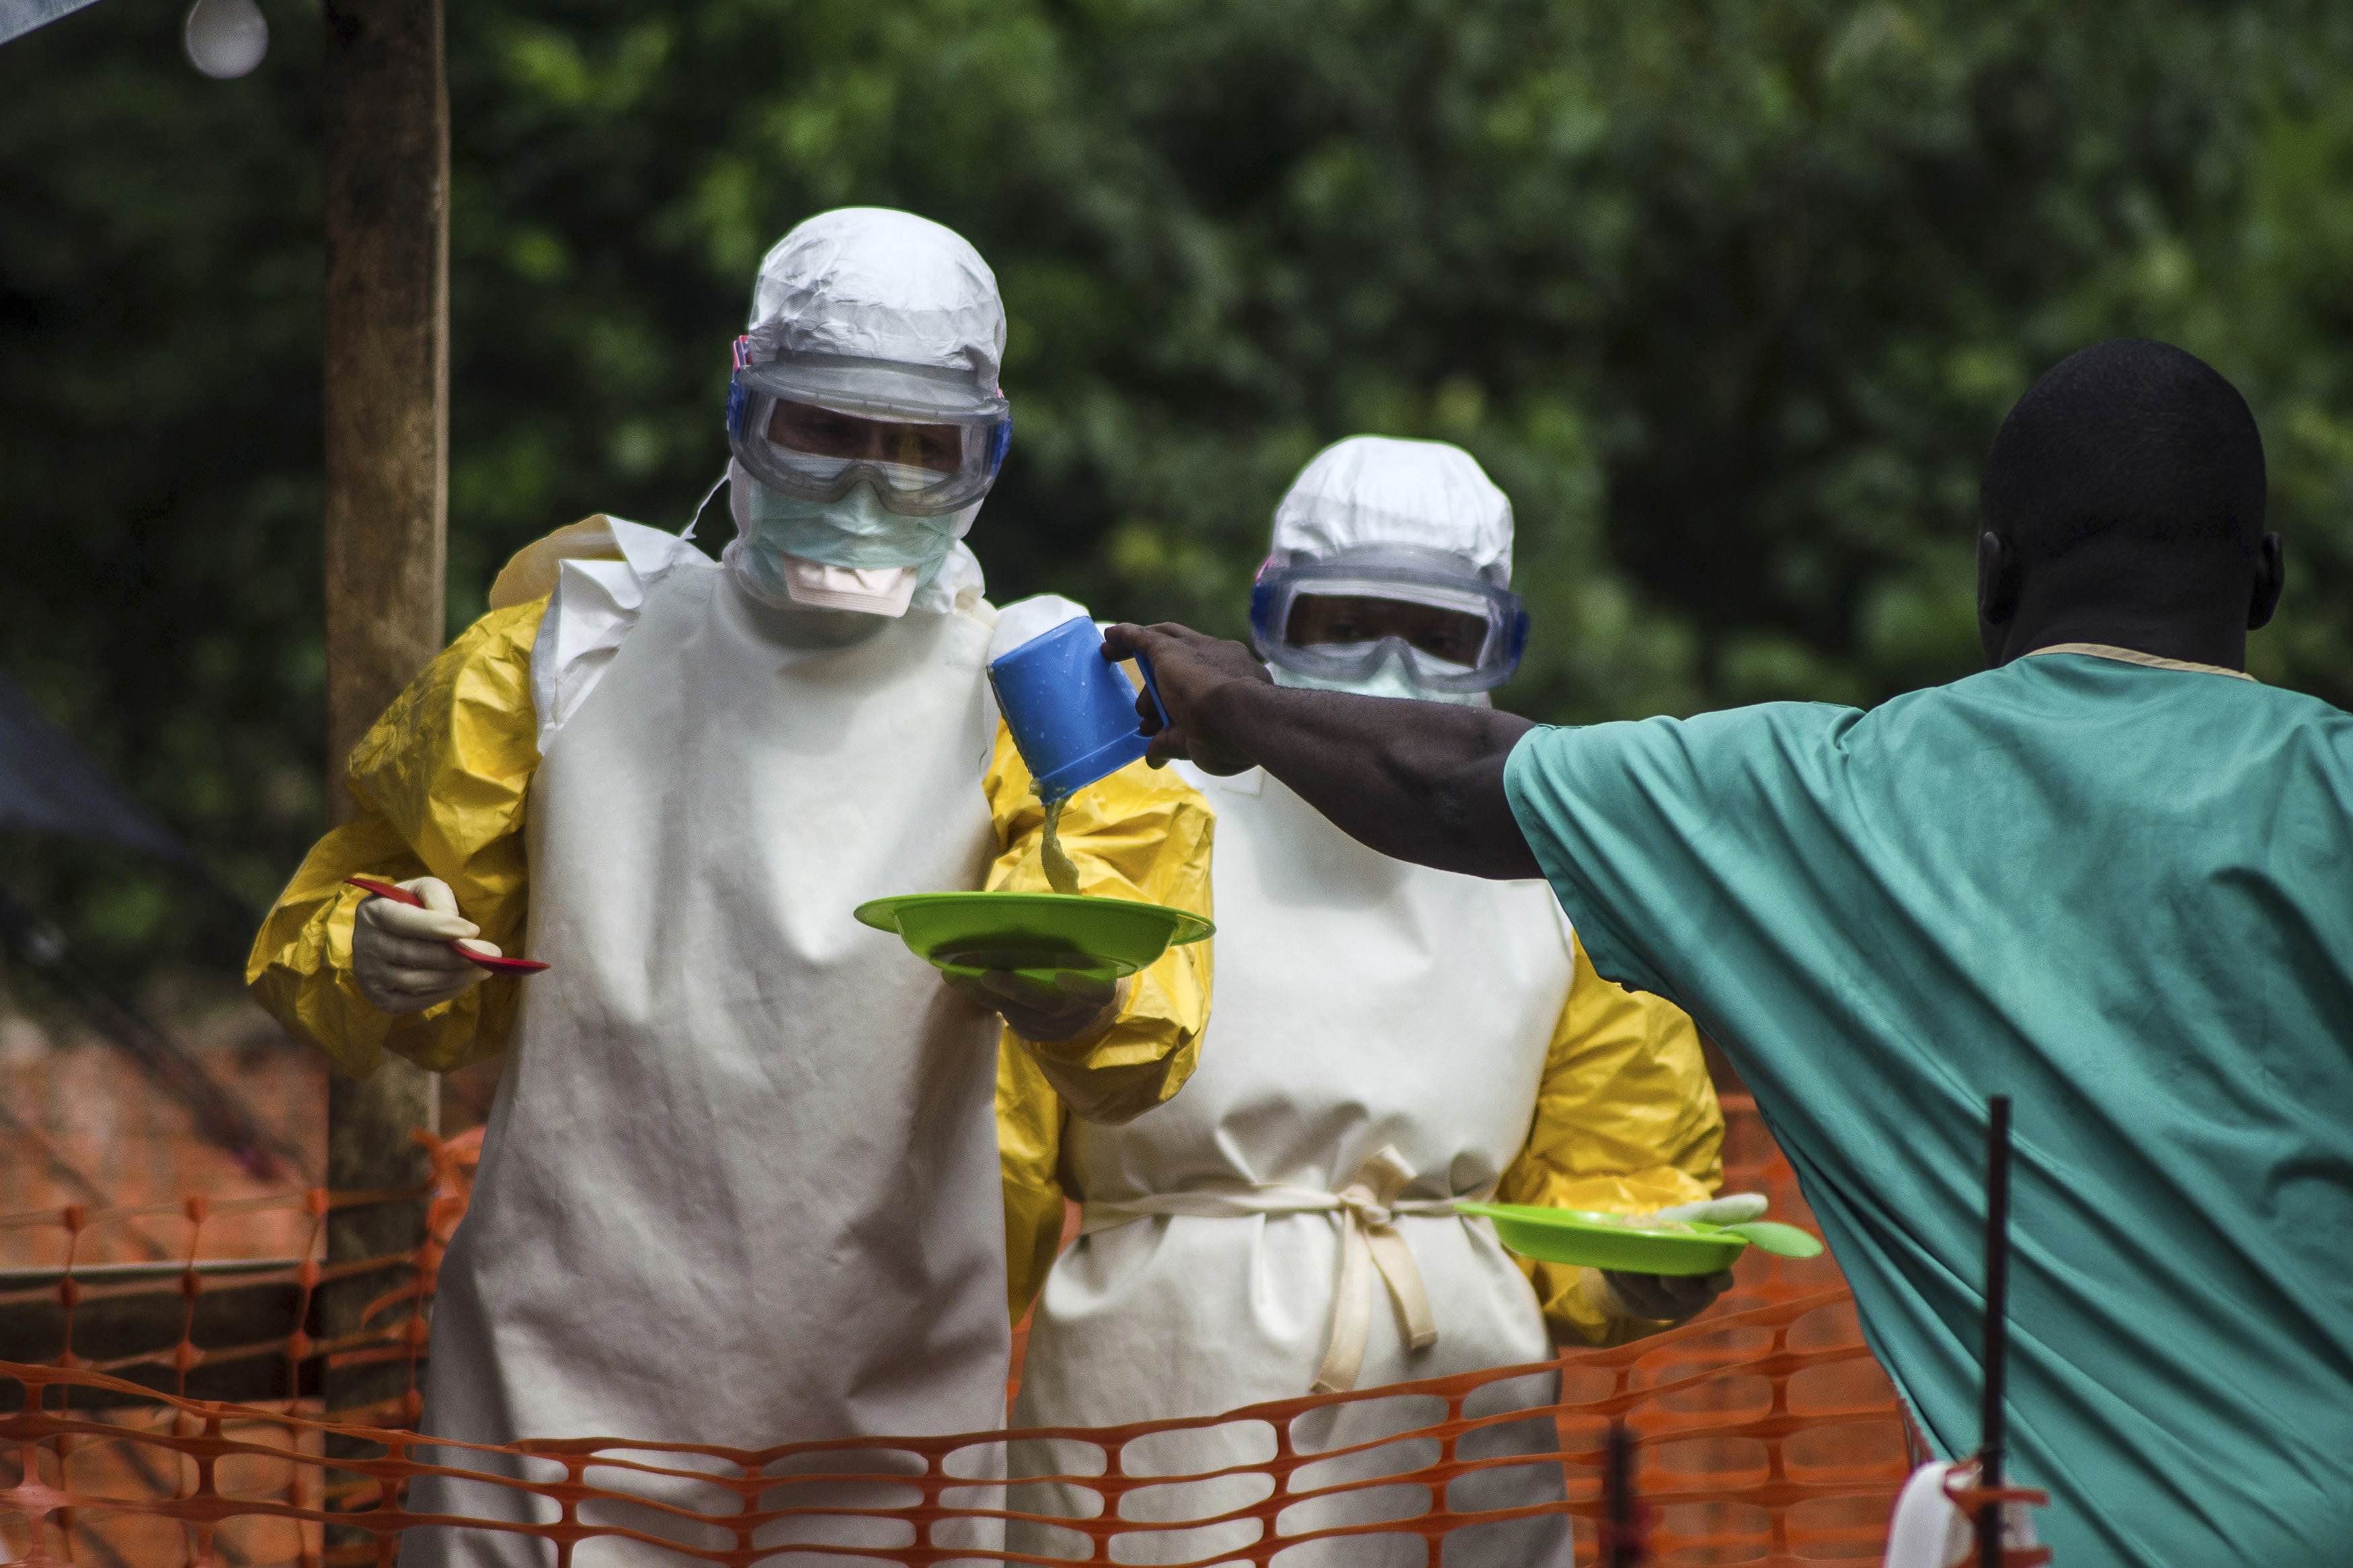 Medical staff working with Medecins sans Frontieres (MSF) prepare to bring food to patients kept in an isolation area at the MSF Ebola treatment centre in Kailahun, Sierra Leone on July 20, 2014.